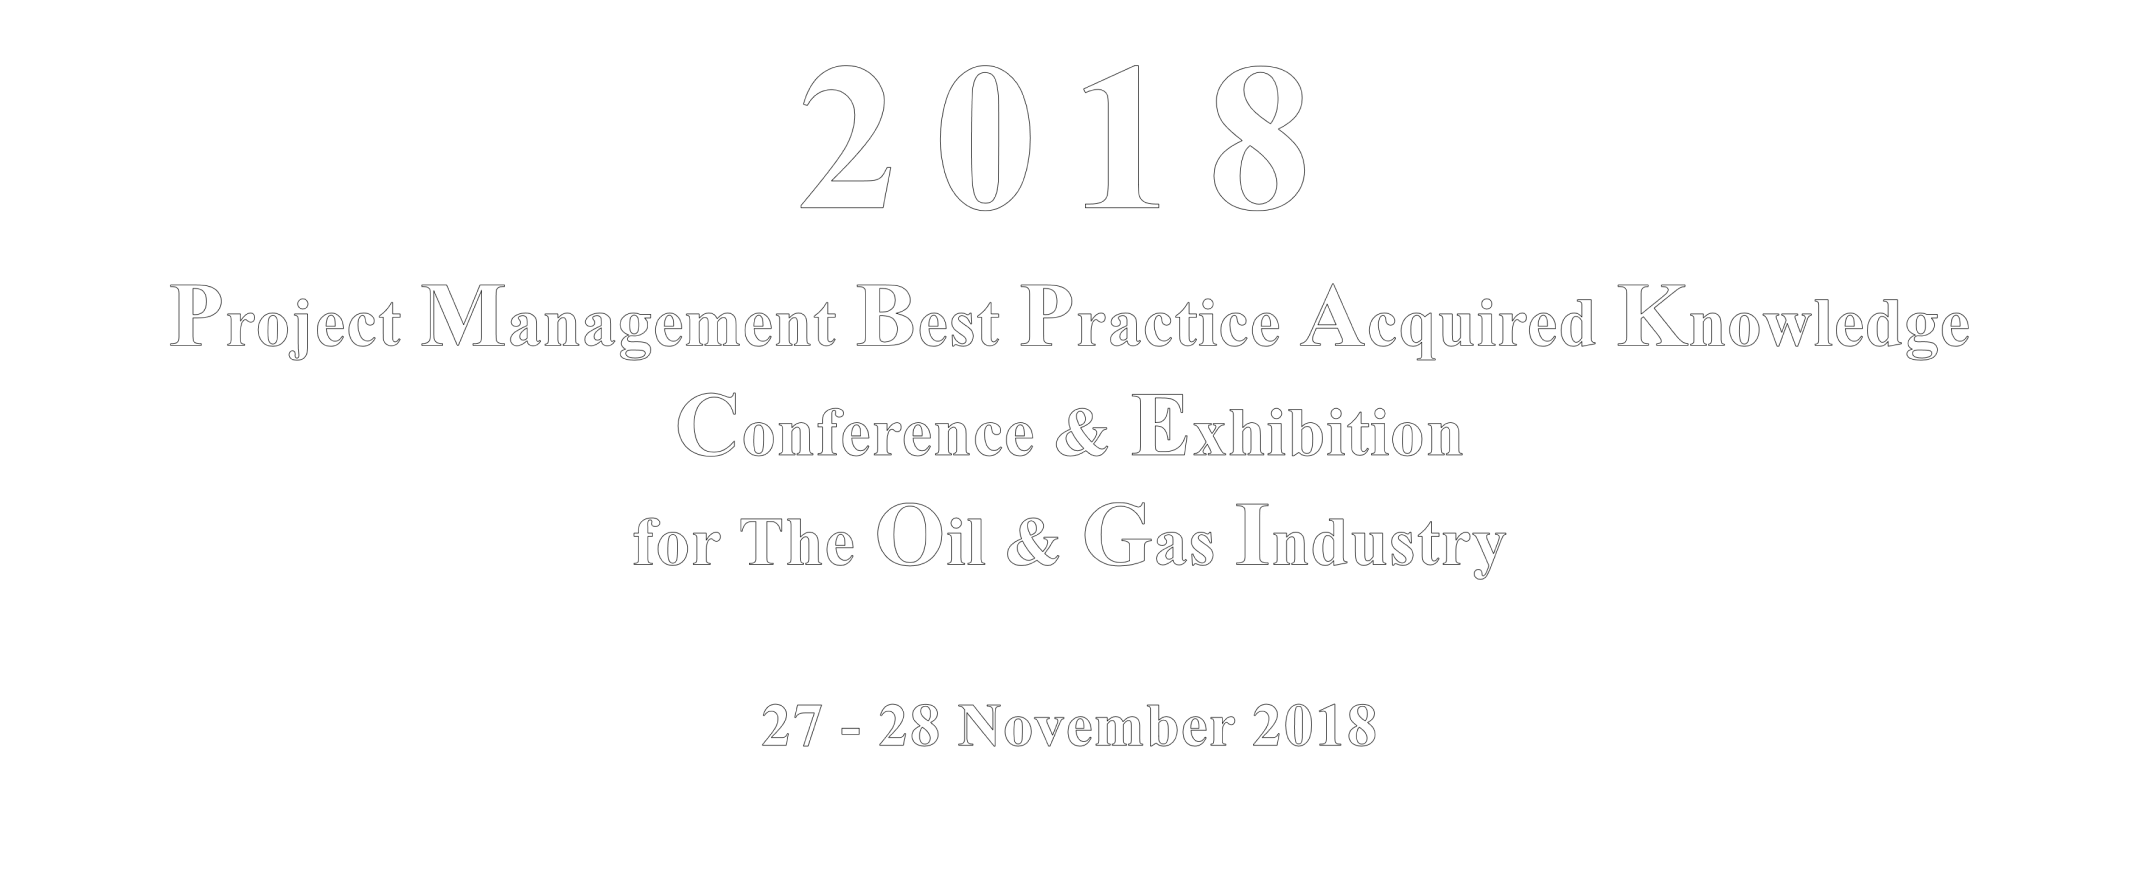 Project Management Best Practice Acquired Knowledge Conference